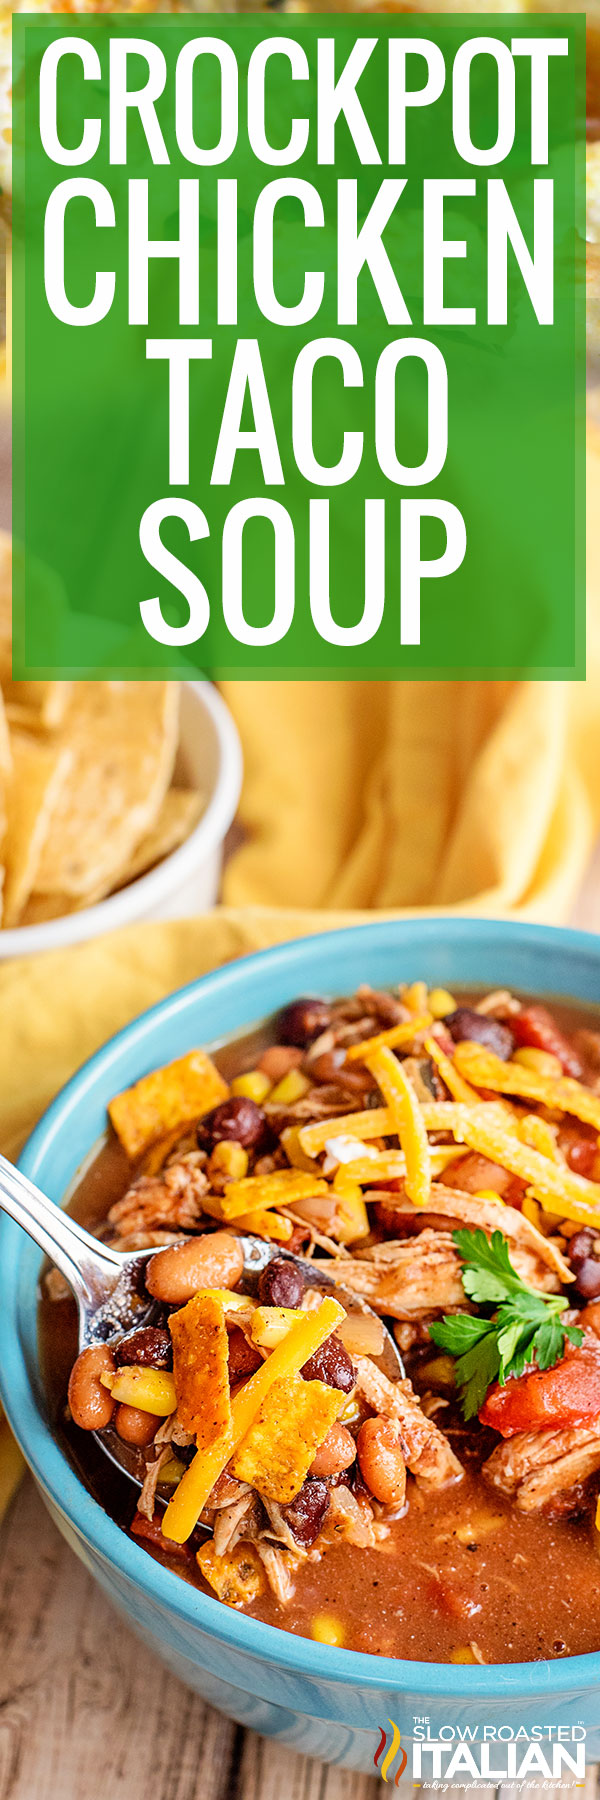 Title text (shown in a blue bowl): Crockpot Chicken Taco Soup